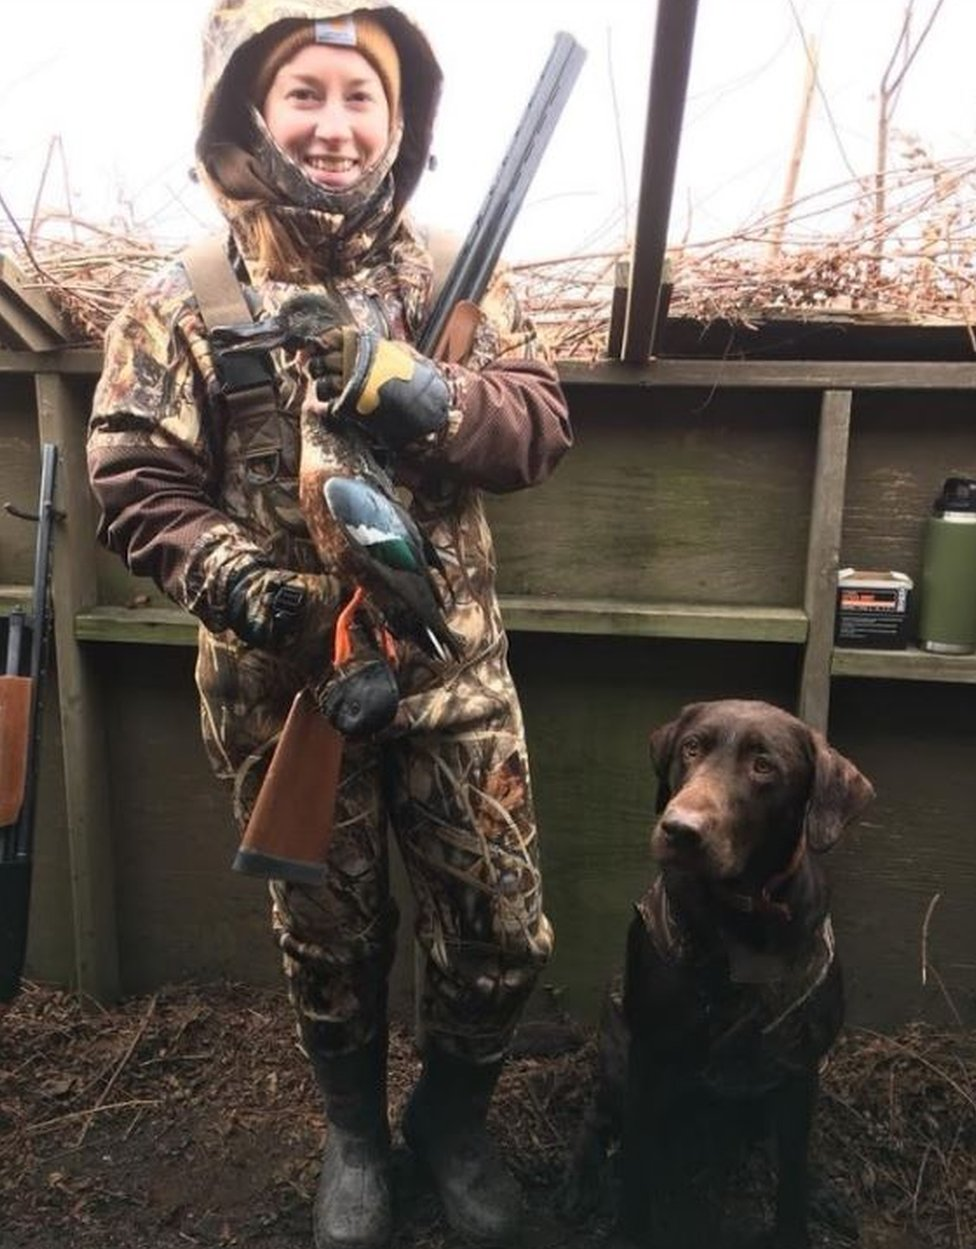 Samantha Pedder with a duck that she shot